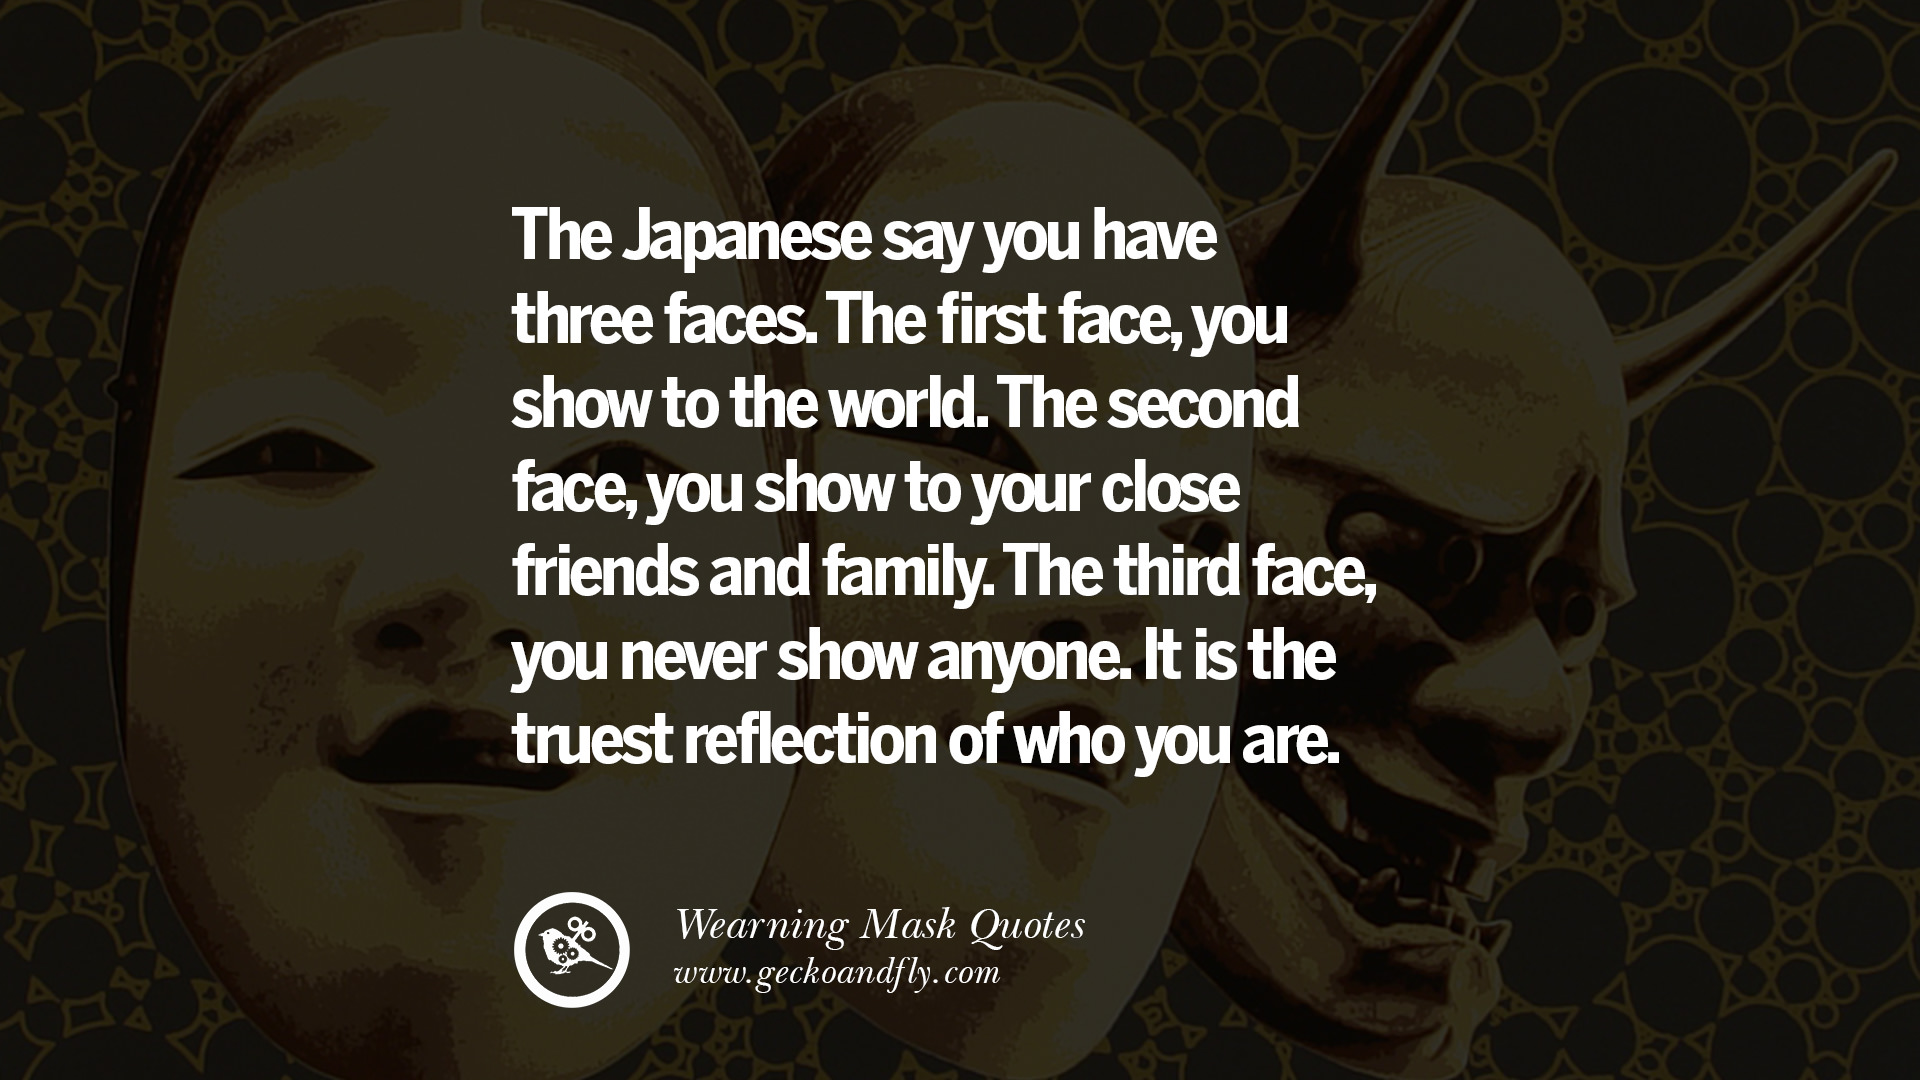 The japanese say you have three faces the first face you show to the world the second face you show to your close friends and family